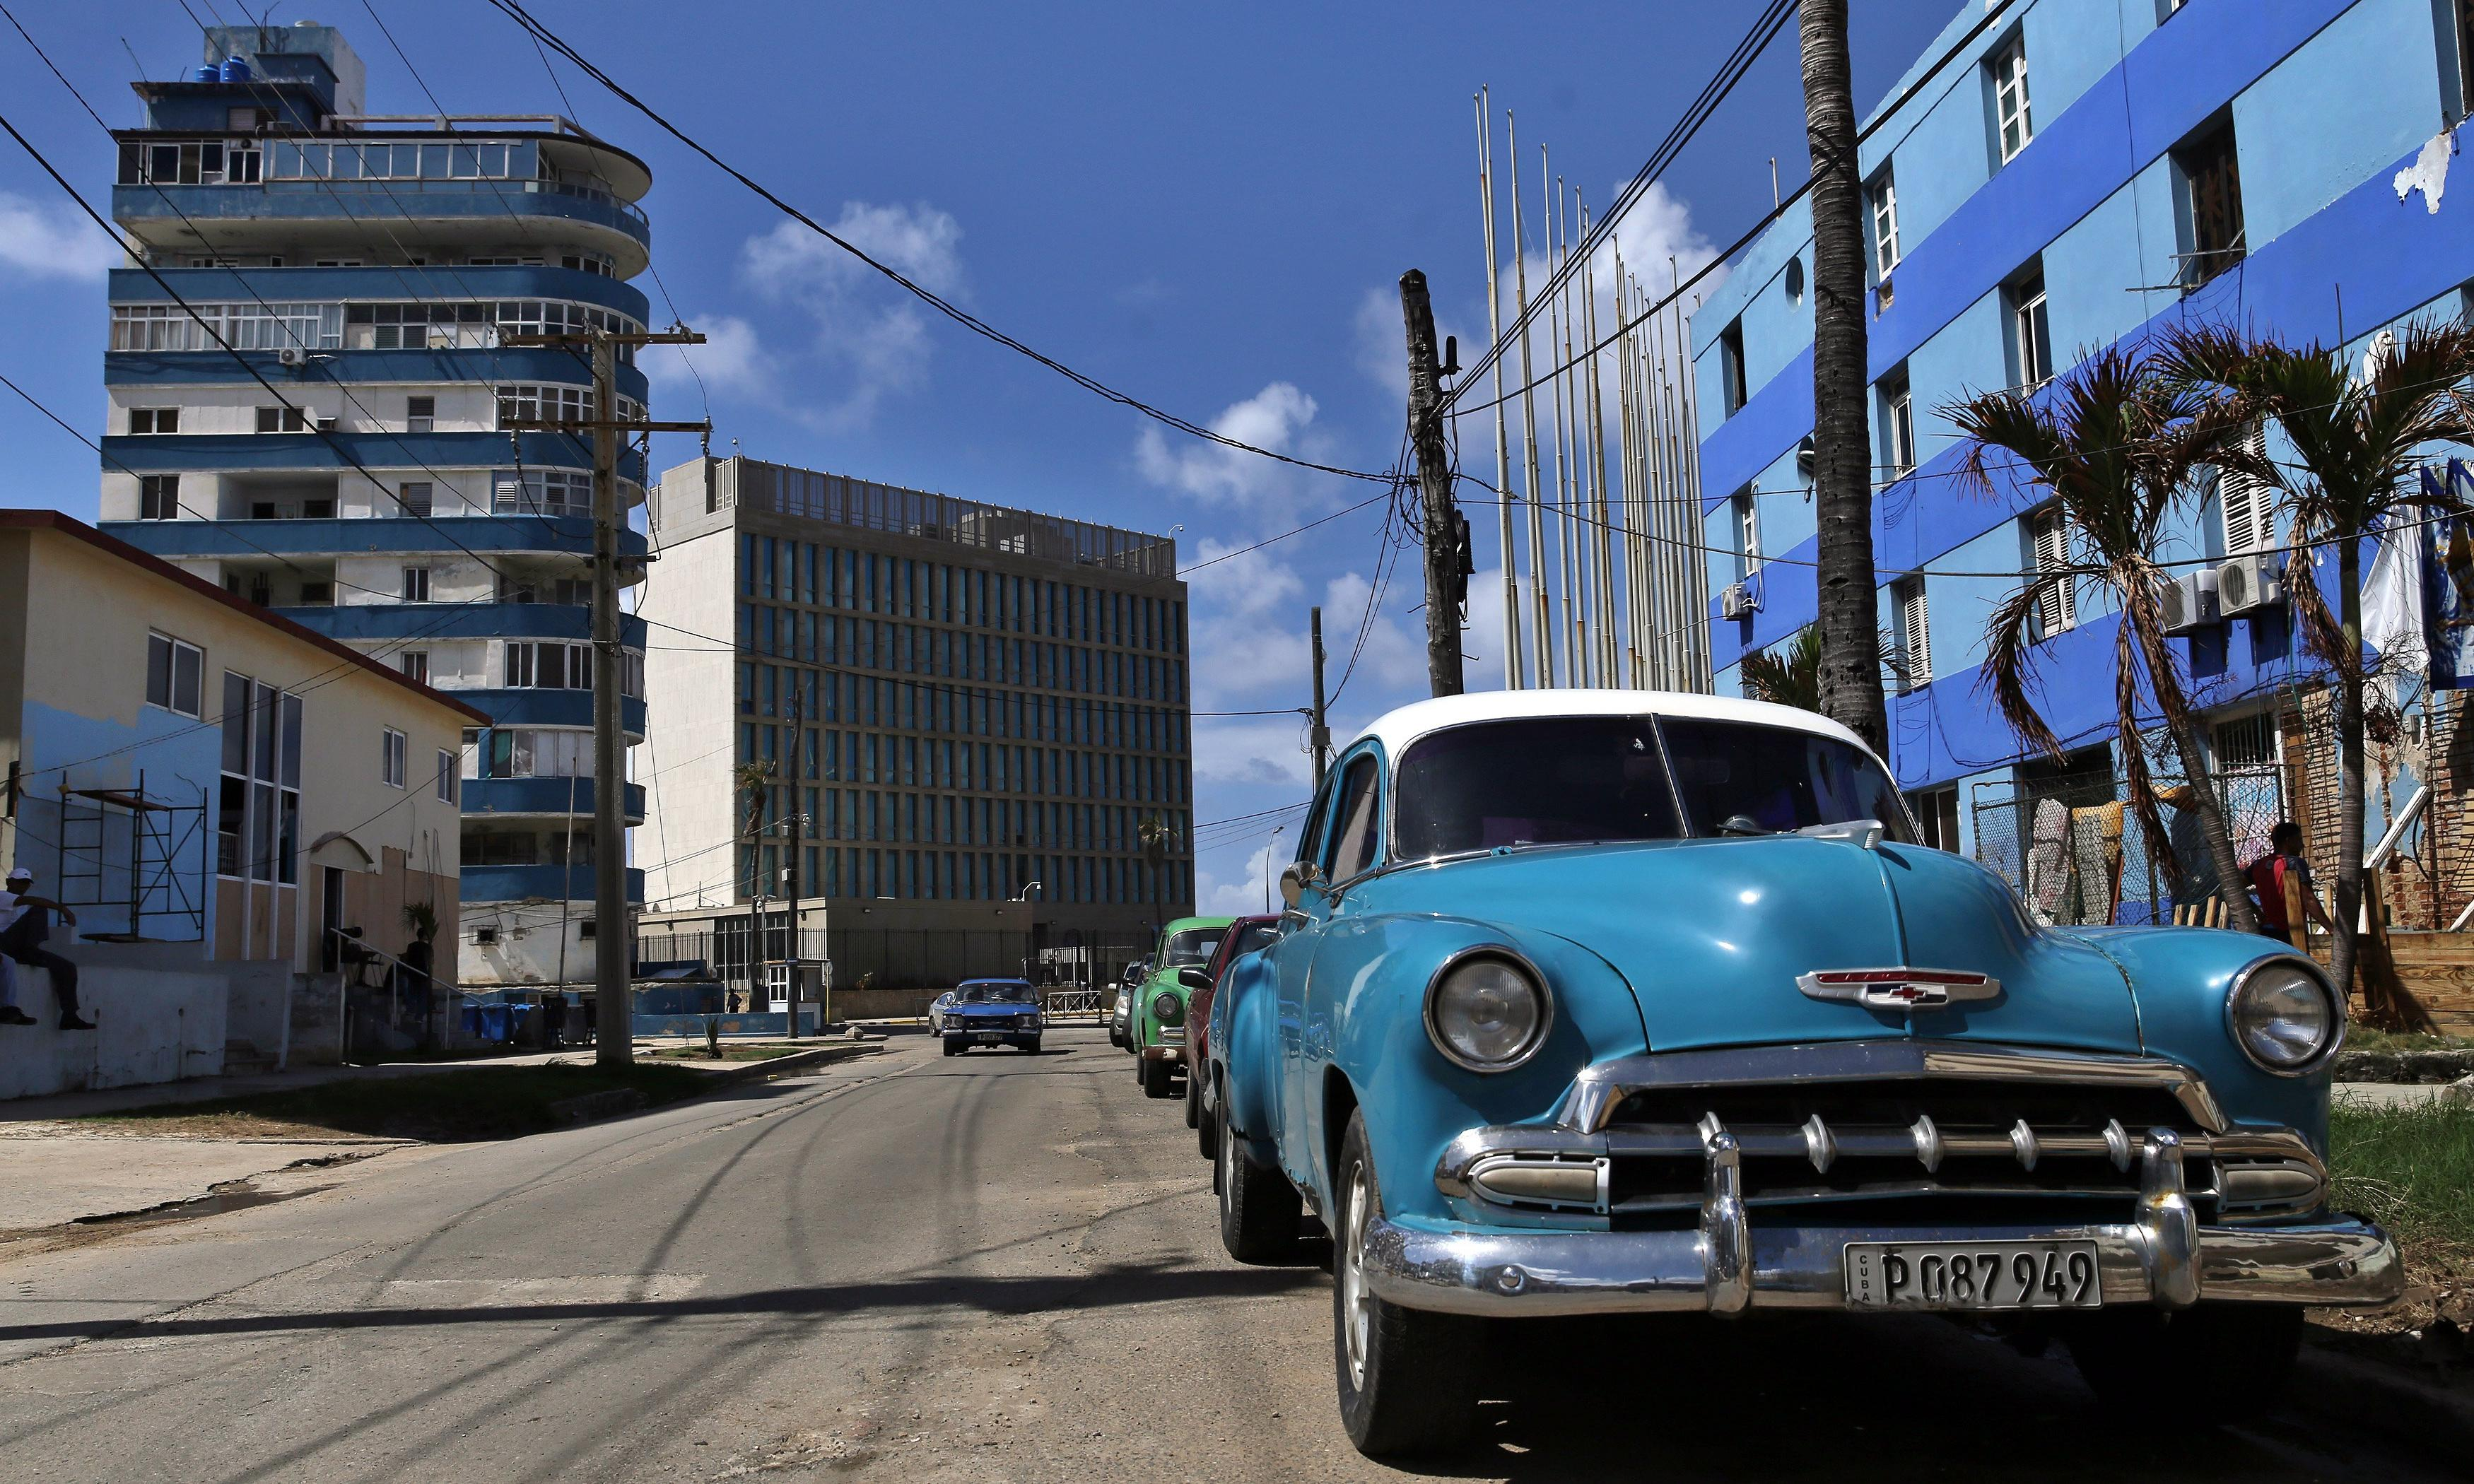 UK diplomatic cables shed light on Cuba 'sonic attacks' scare